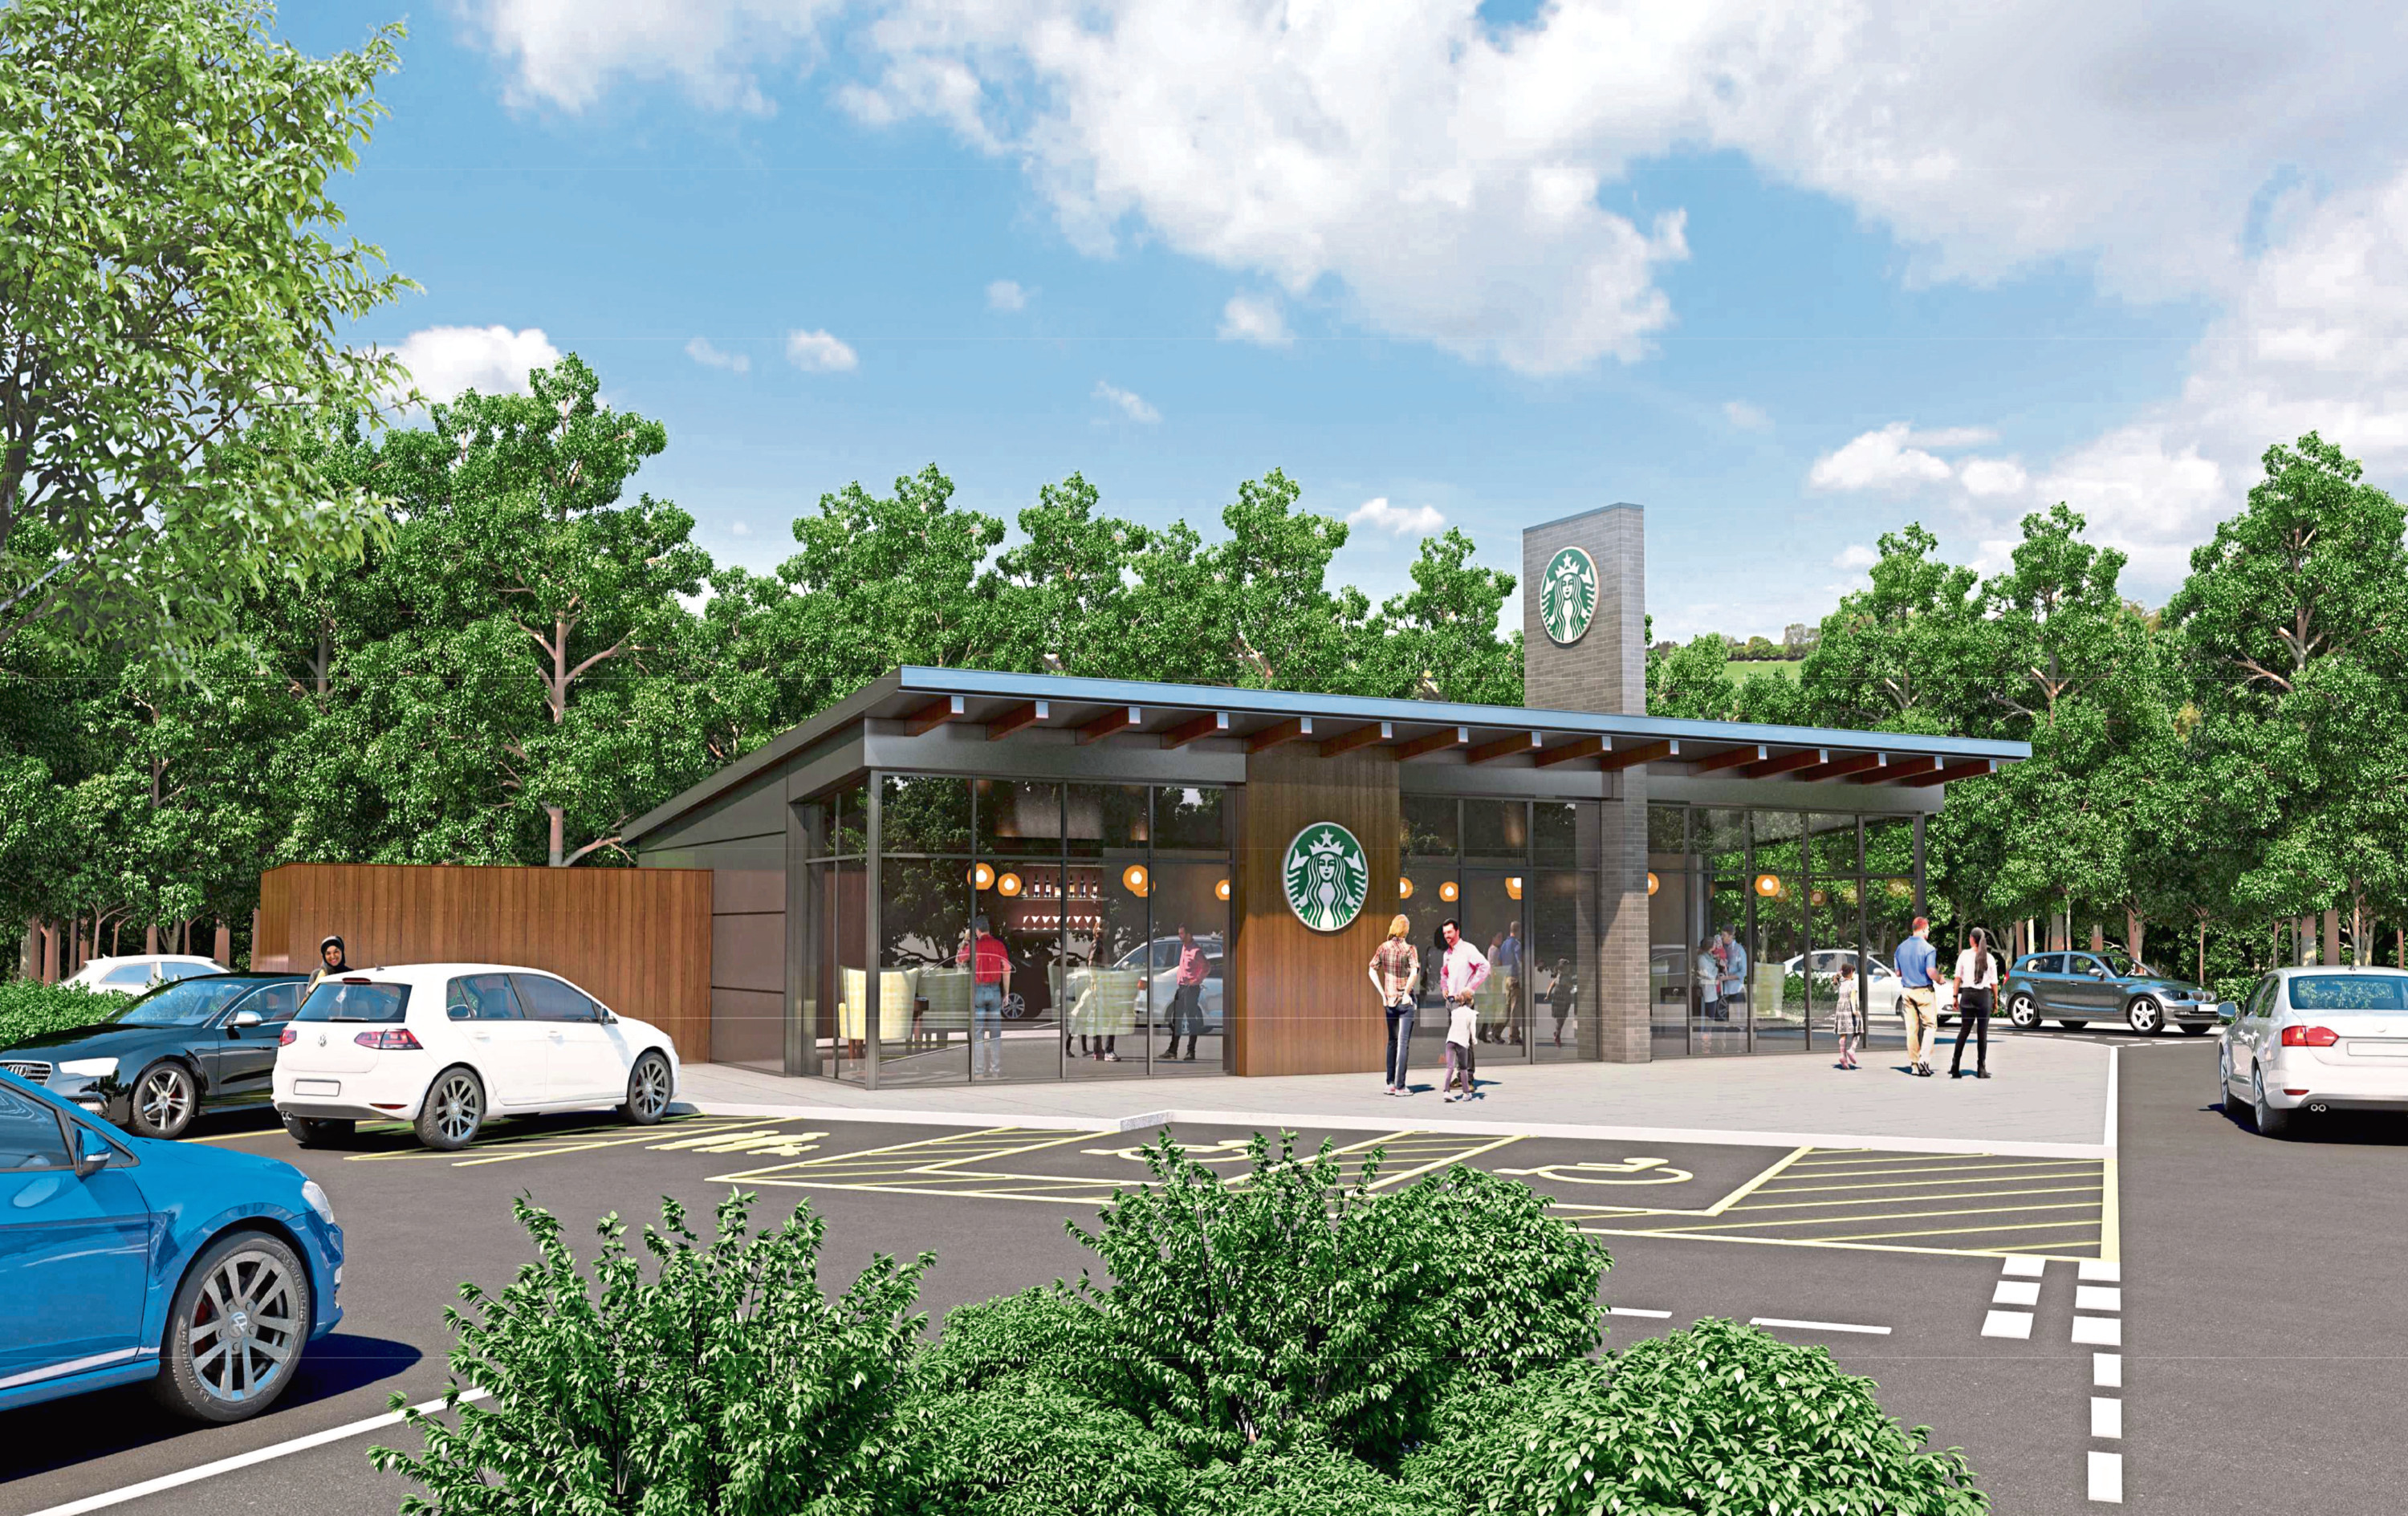 An artist's impression of the planned Starbucks drive-thru at Afton Way near the Morrisons superstore